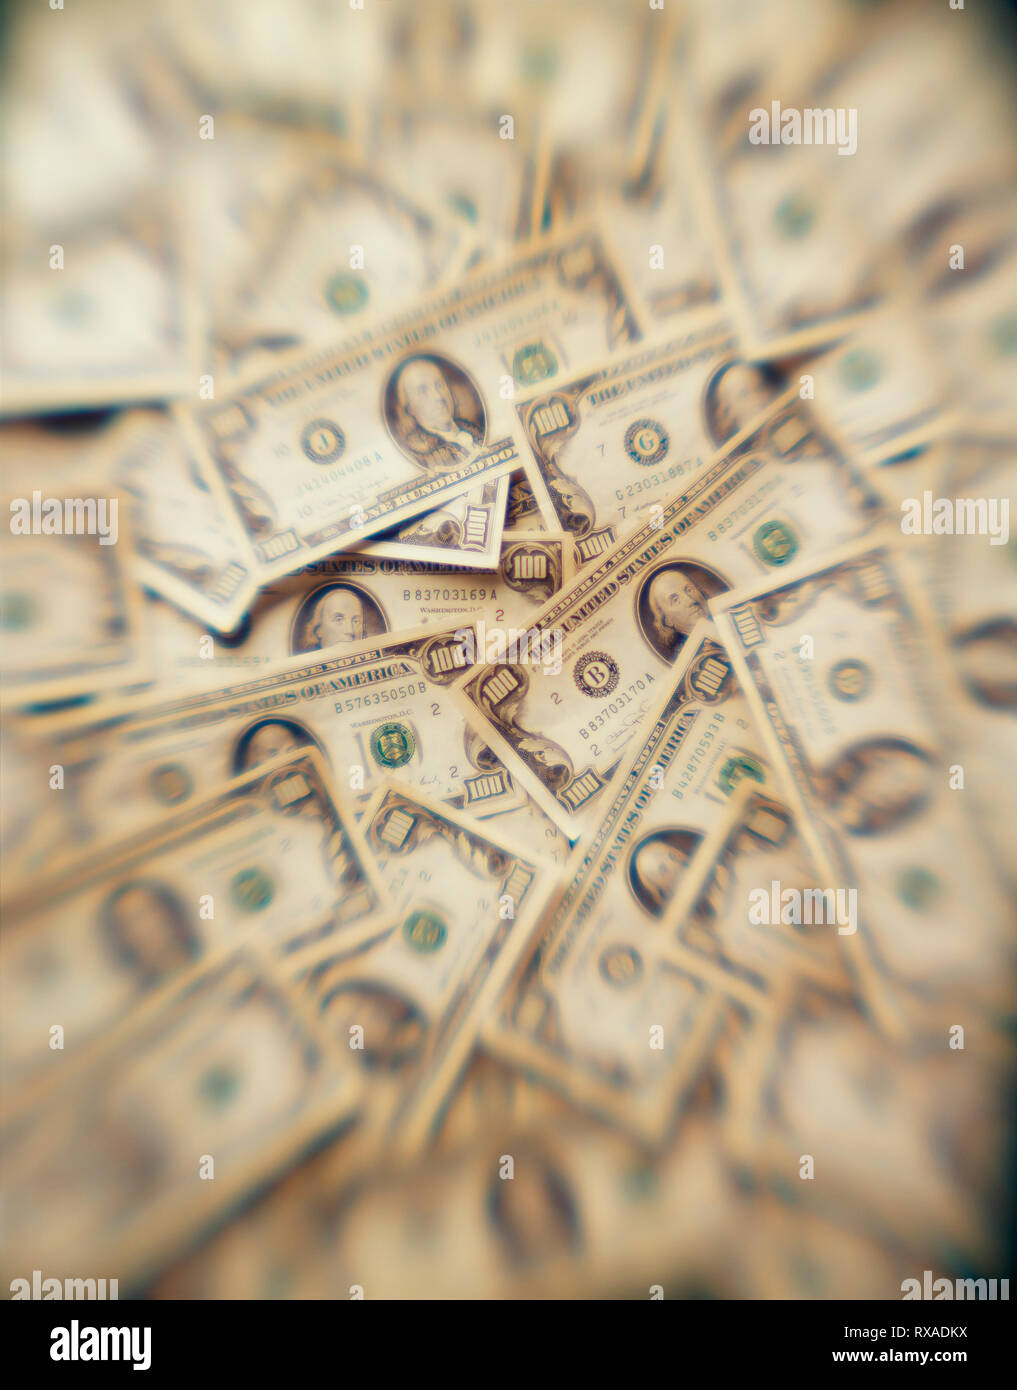 Money displayed on table as if looked through an addicts mind and hallucinating Stock Photo